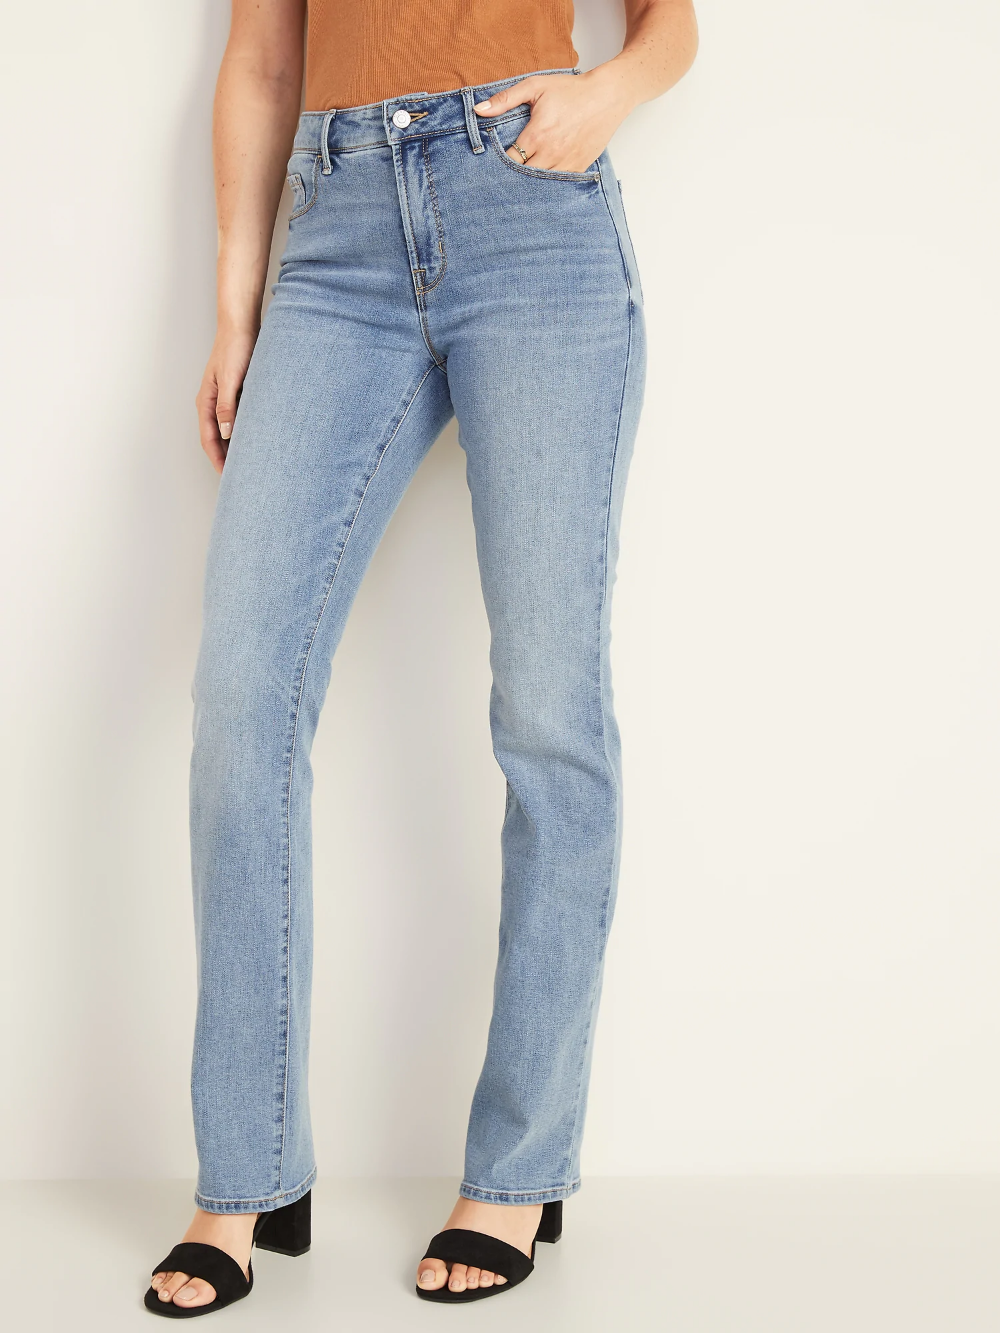 High Waisted Kicker Boot Cut Jeans For Women